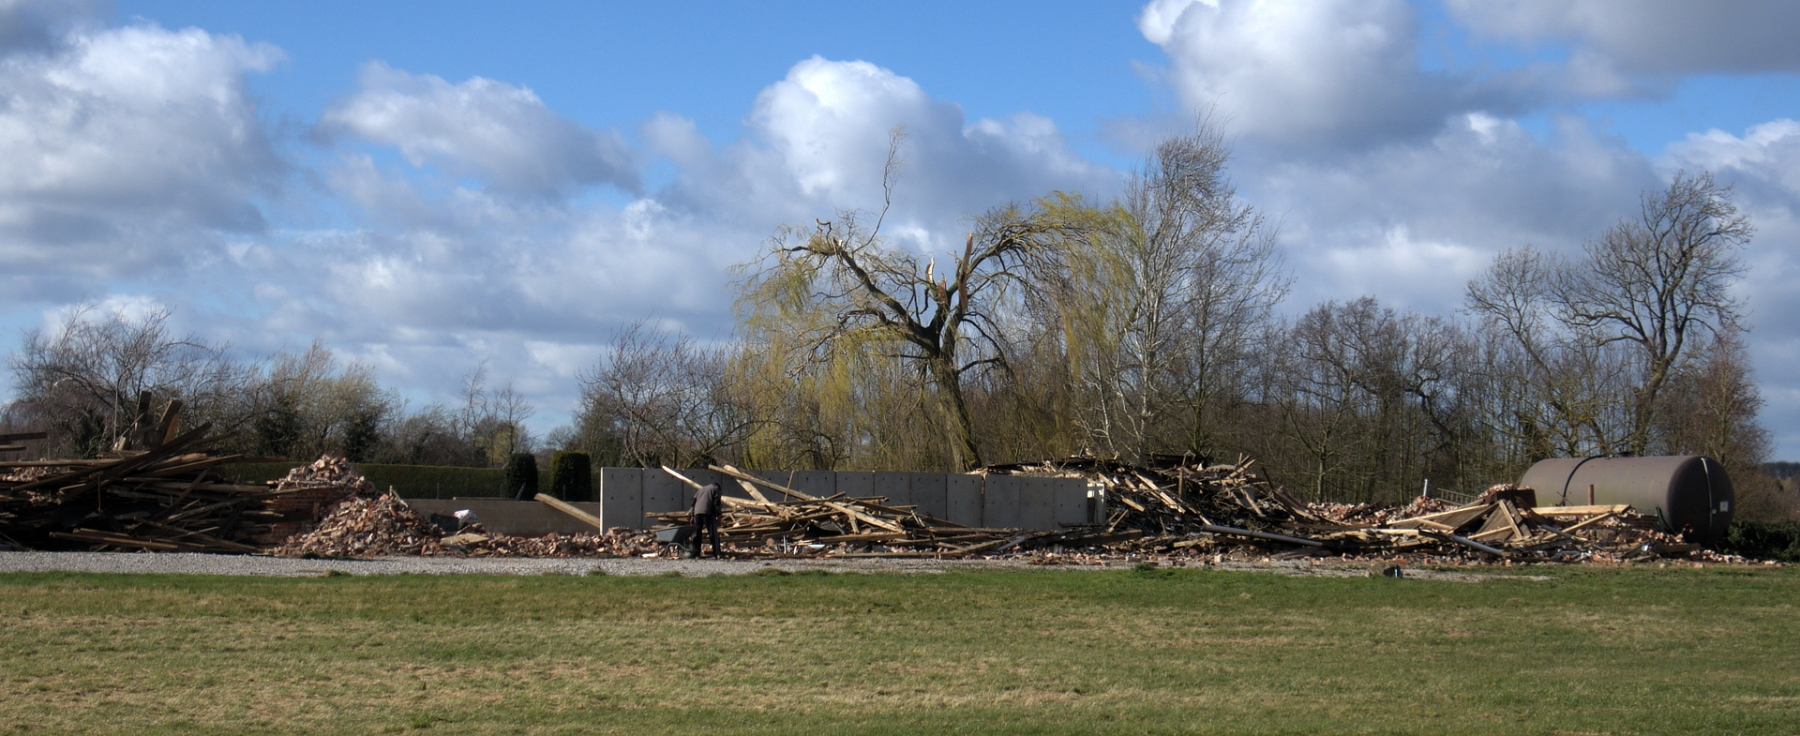 Damage caused by Tornado 10th March